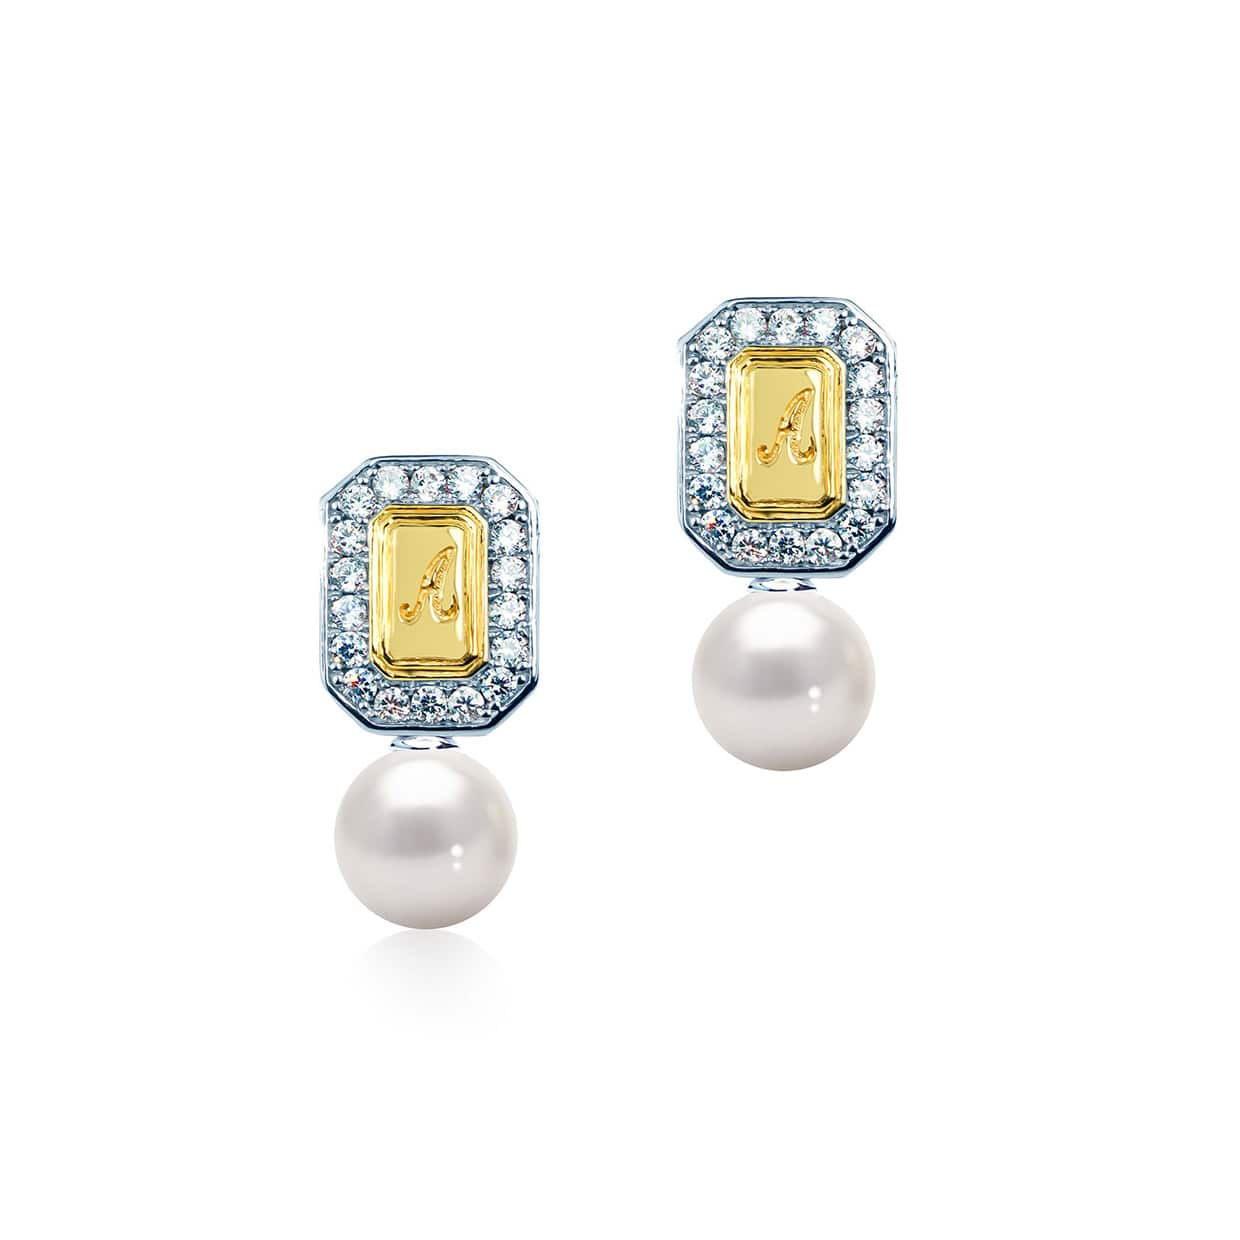 Abelstedt A Gold & Silver Freshwater Pearl Earrings - Abelstedt